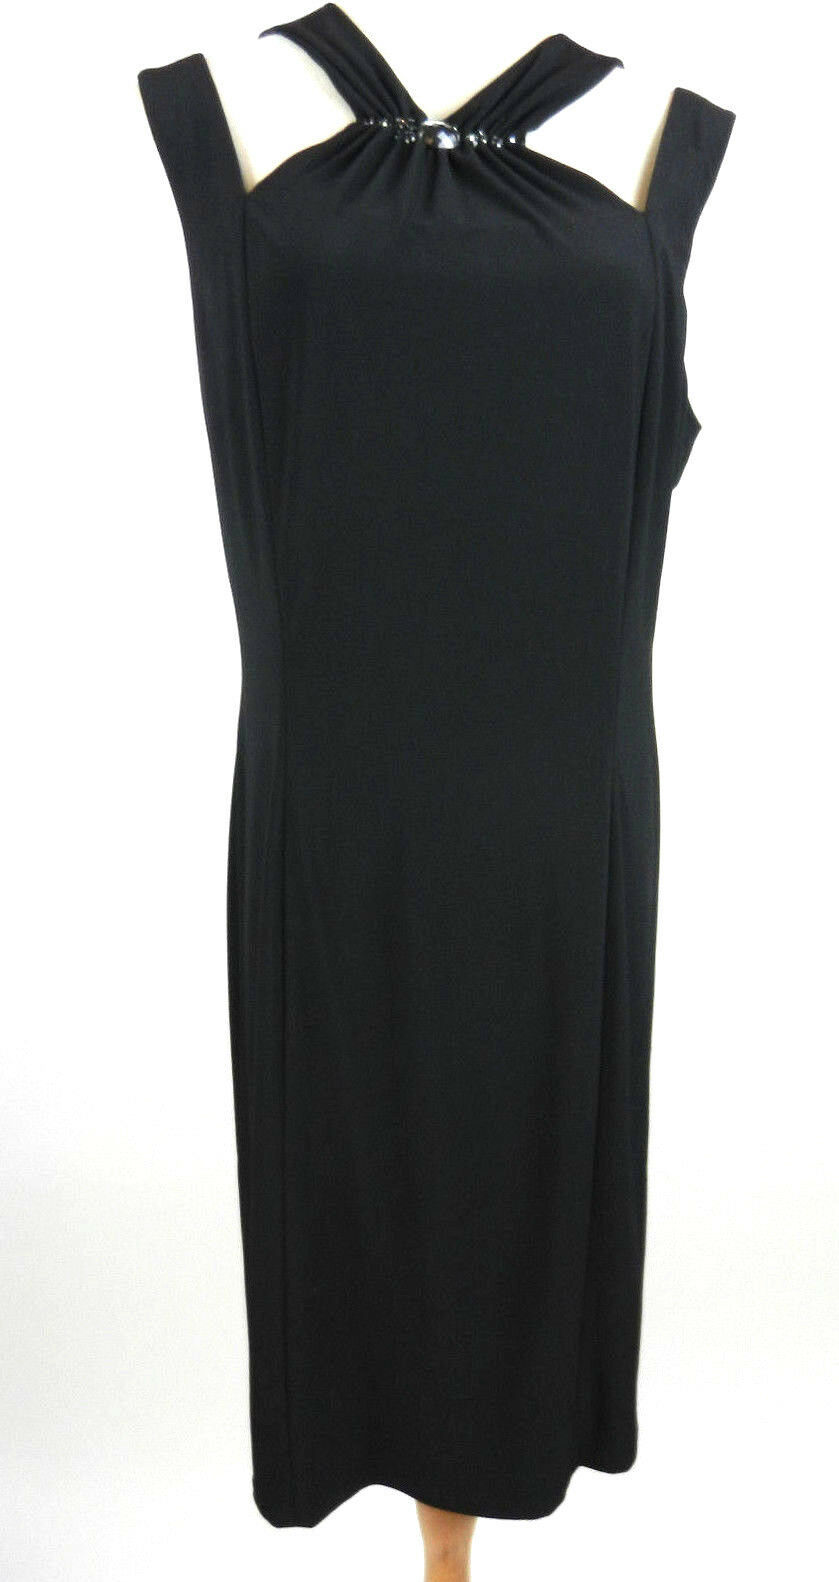 Anne Klein 14 Womens Dress Black Sleeveless Cutouts at Shoulders Lined Evening - $49.49